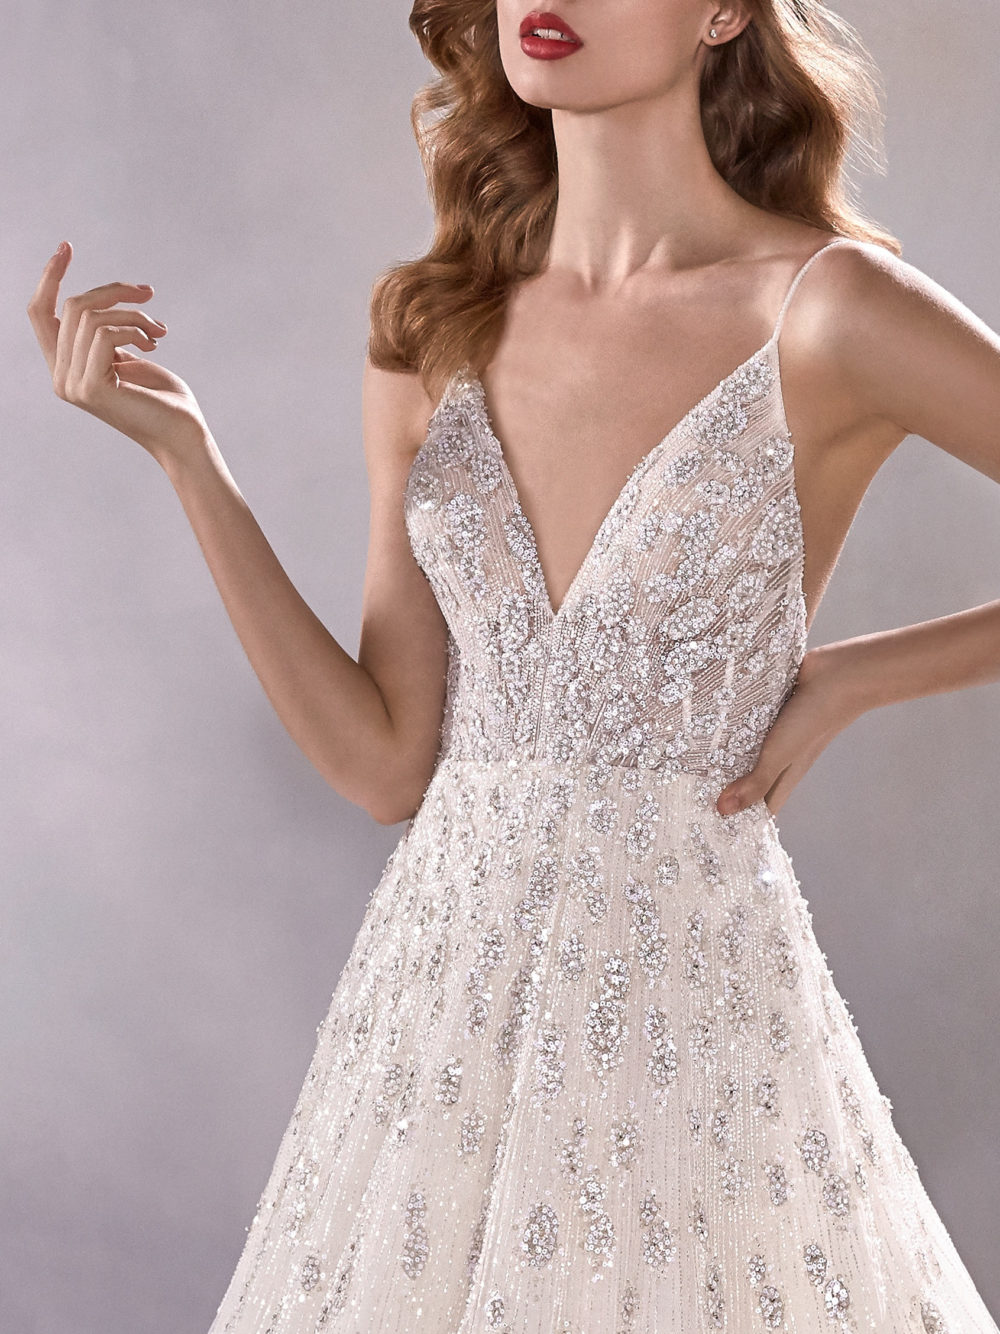 Pronovias Shining Star Wedding Gown Dress 2020 Atelier Collection body detail